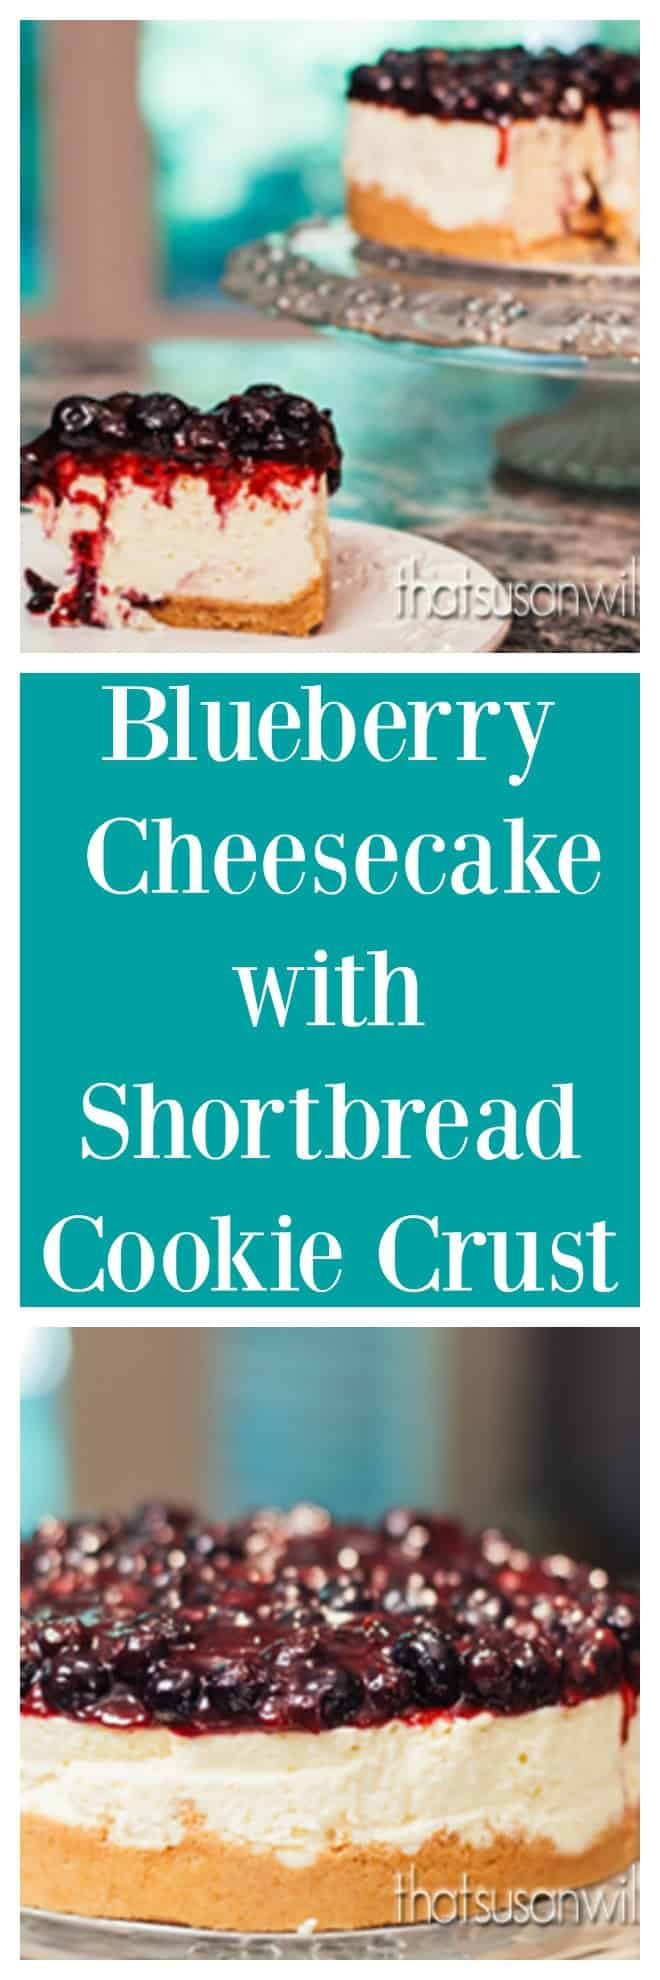 Blueberry Cheesecake with Shortbread Cookie Crust is the recipe for the perfectly ultimate summer dessert.